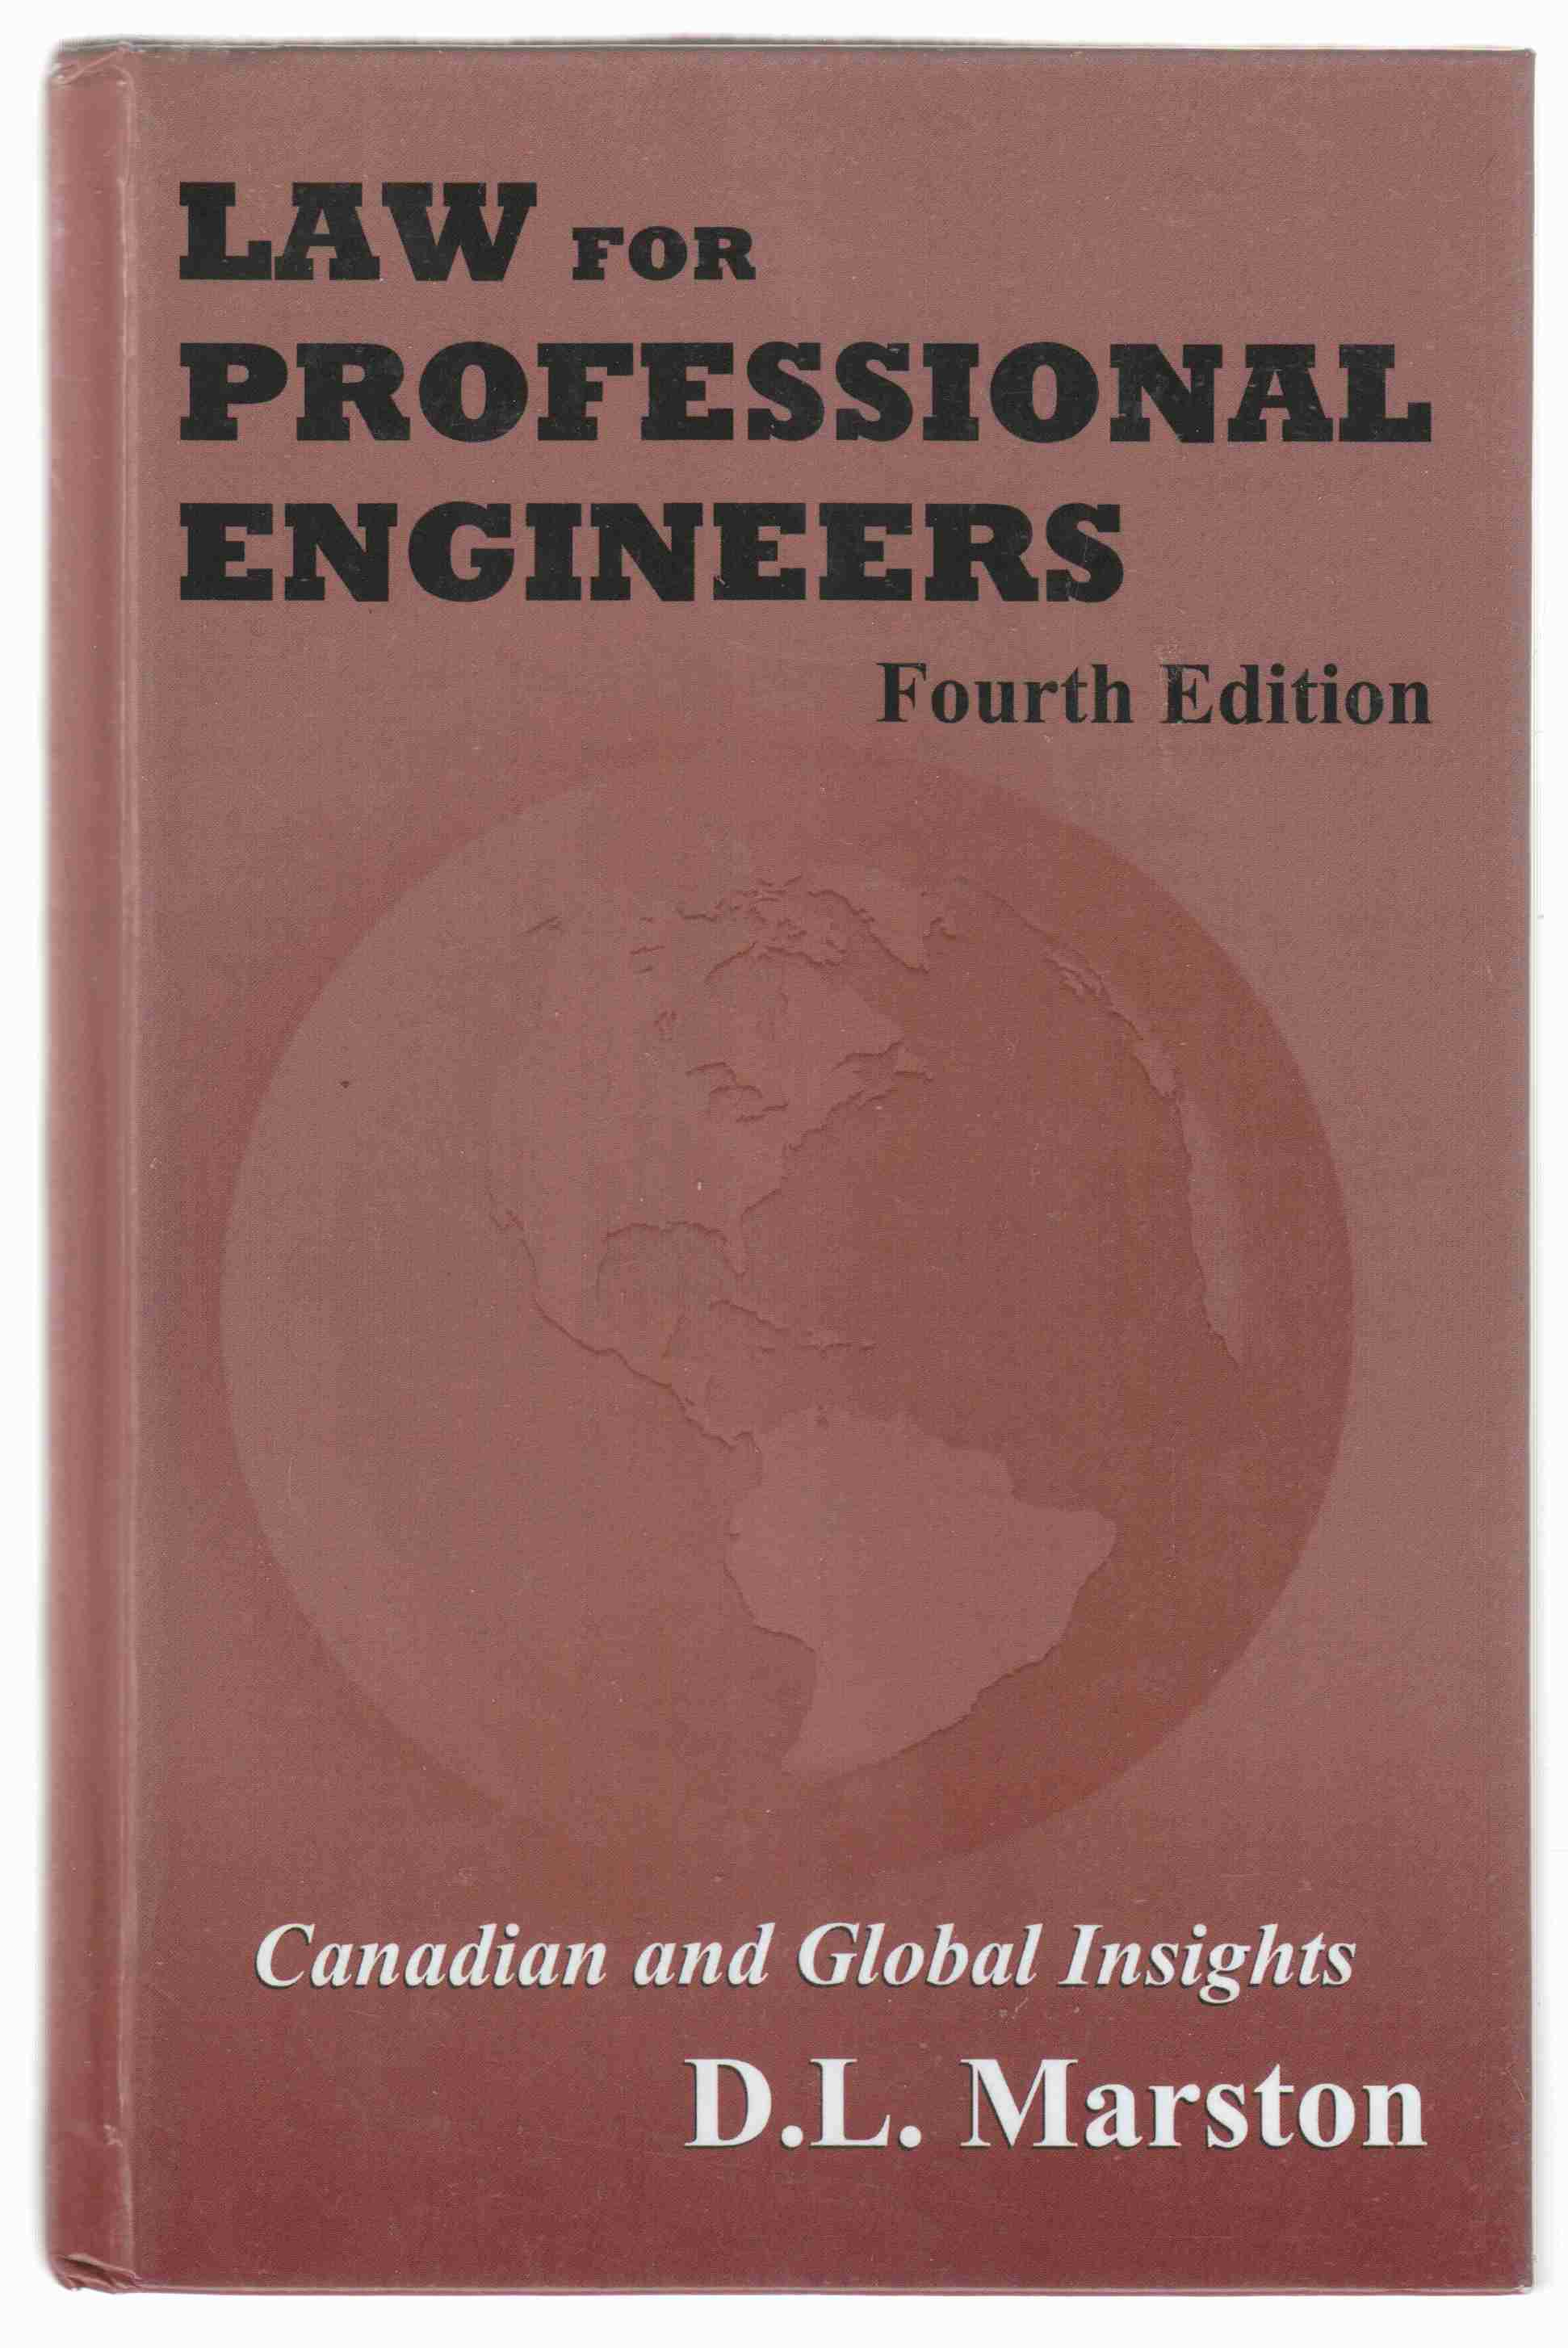 Image for Law for Professional Engineers: Canadian and Global Insights Fourth Edition